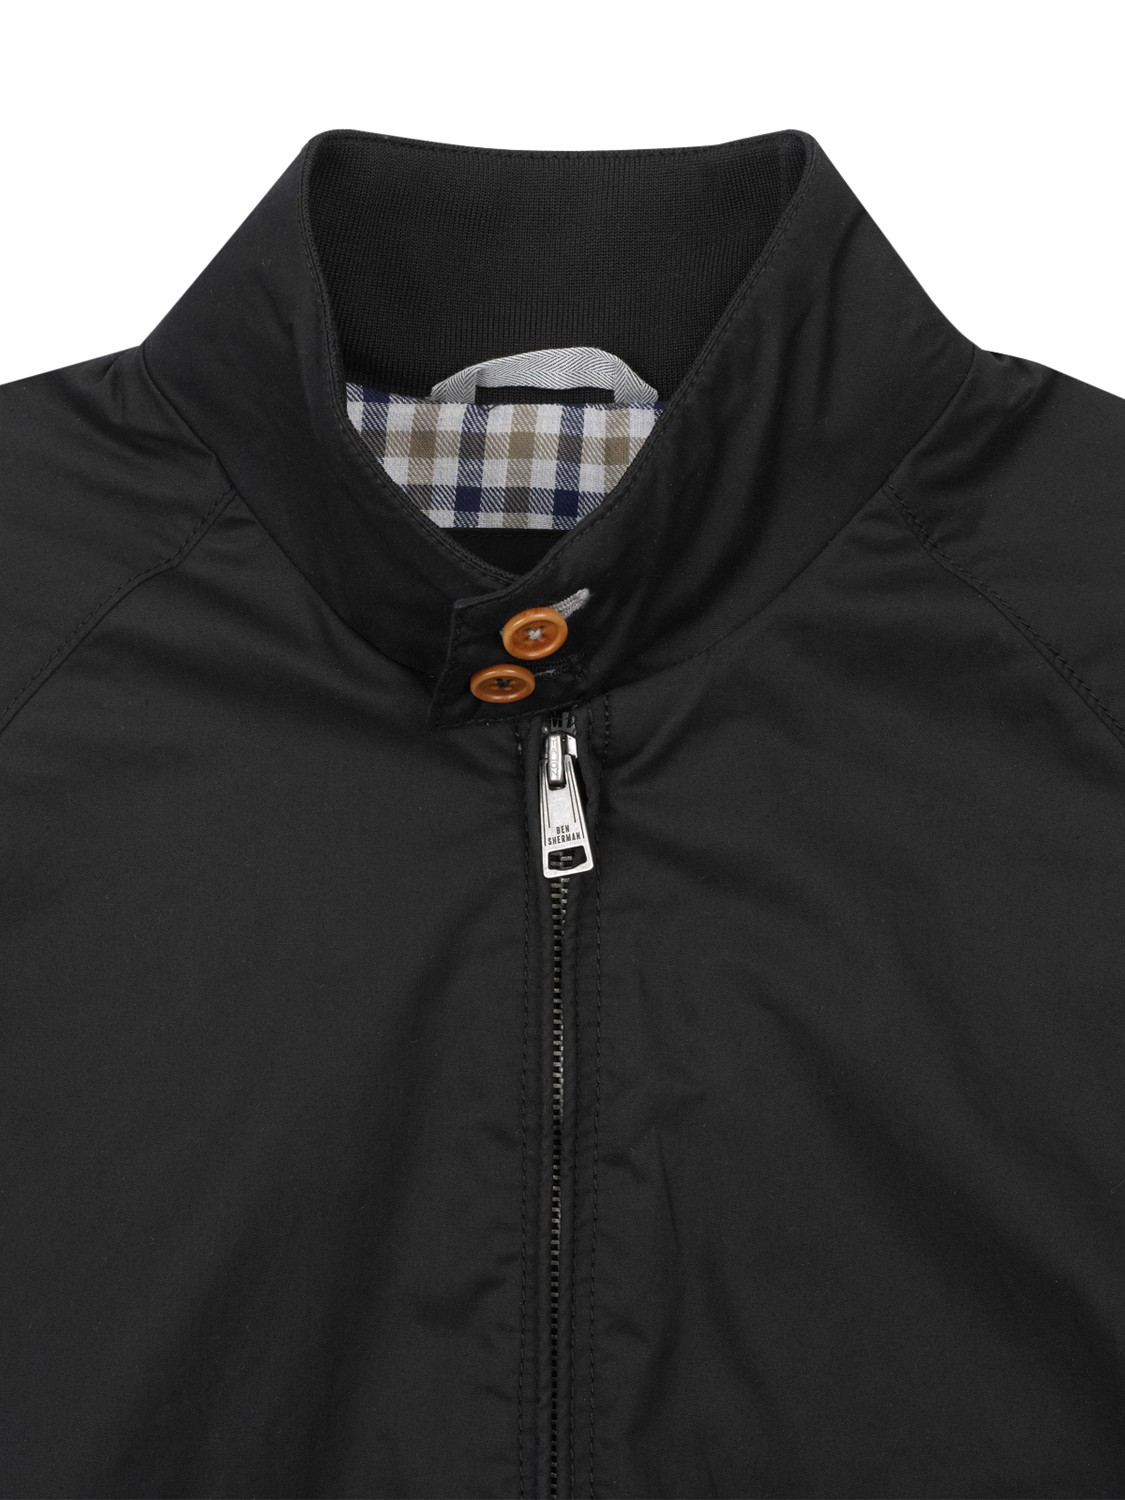 ben sherman staples harrington jacket in black for men lyst. Black Bedroom Furniture Sets. Home Design Ideas